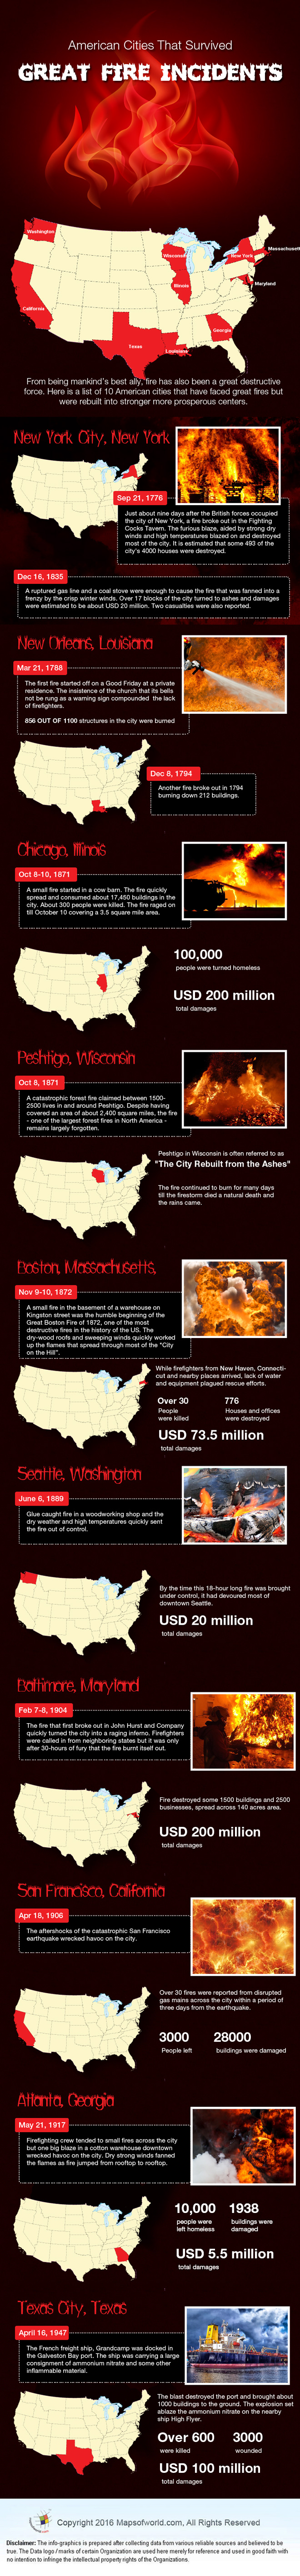 American Cities That Survived Great Fire Incidents Infographic